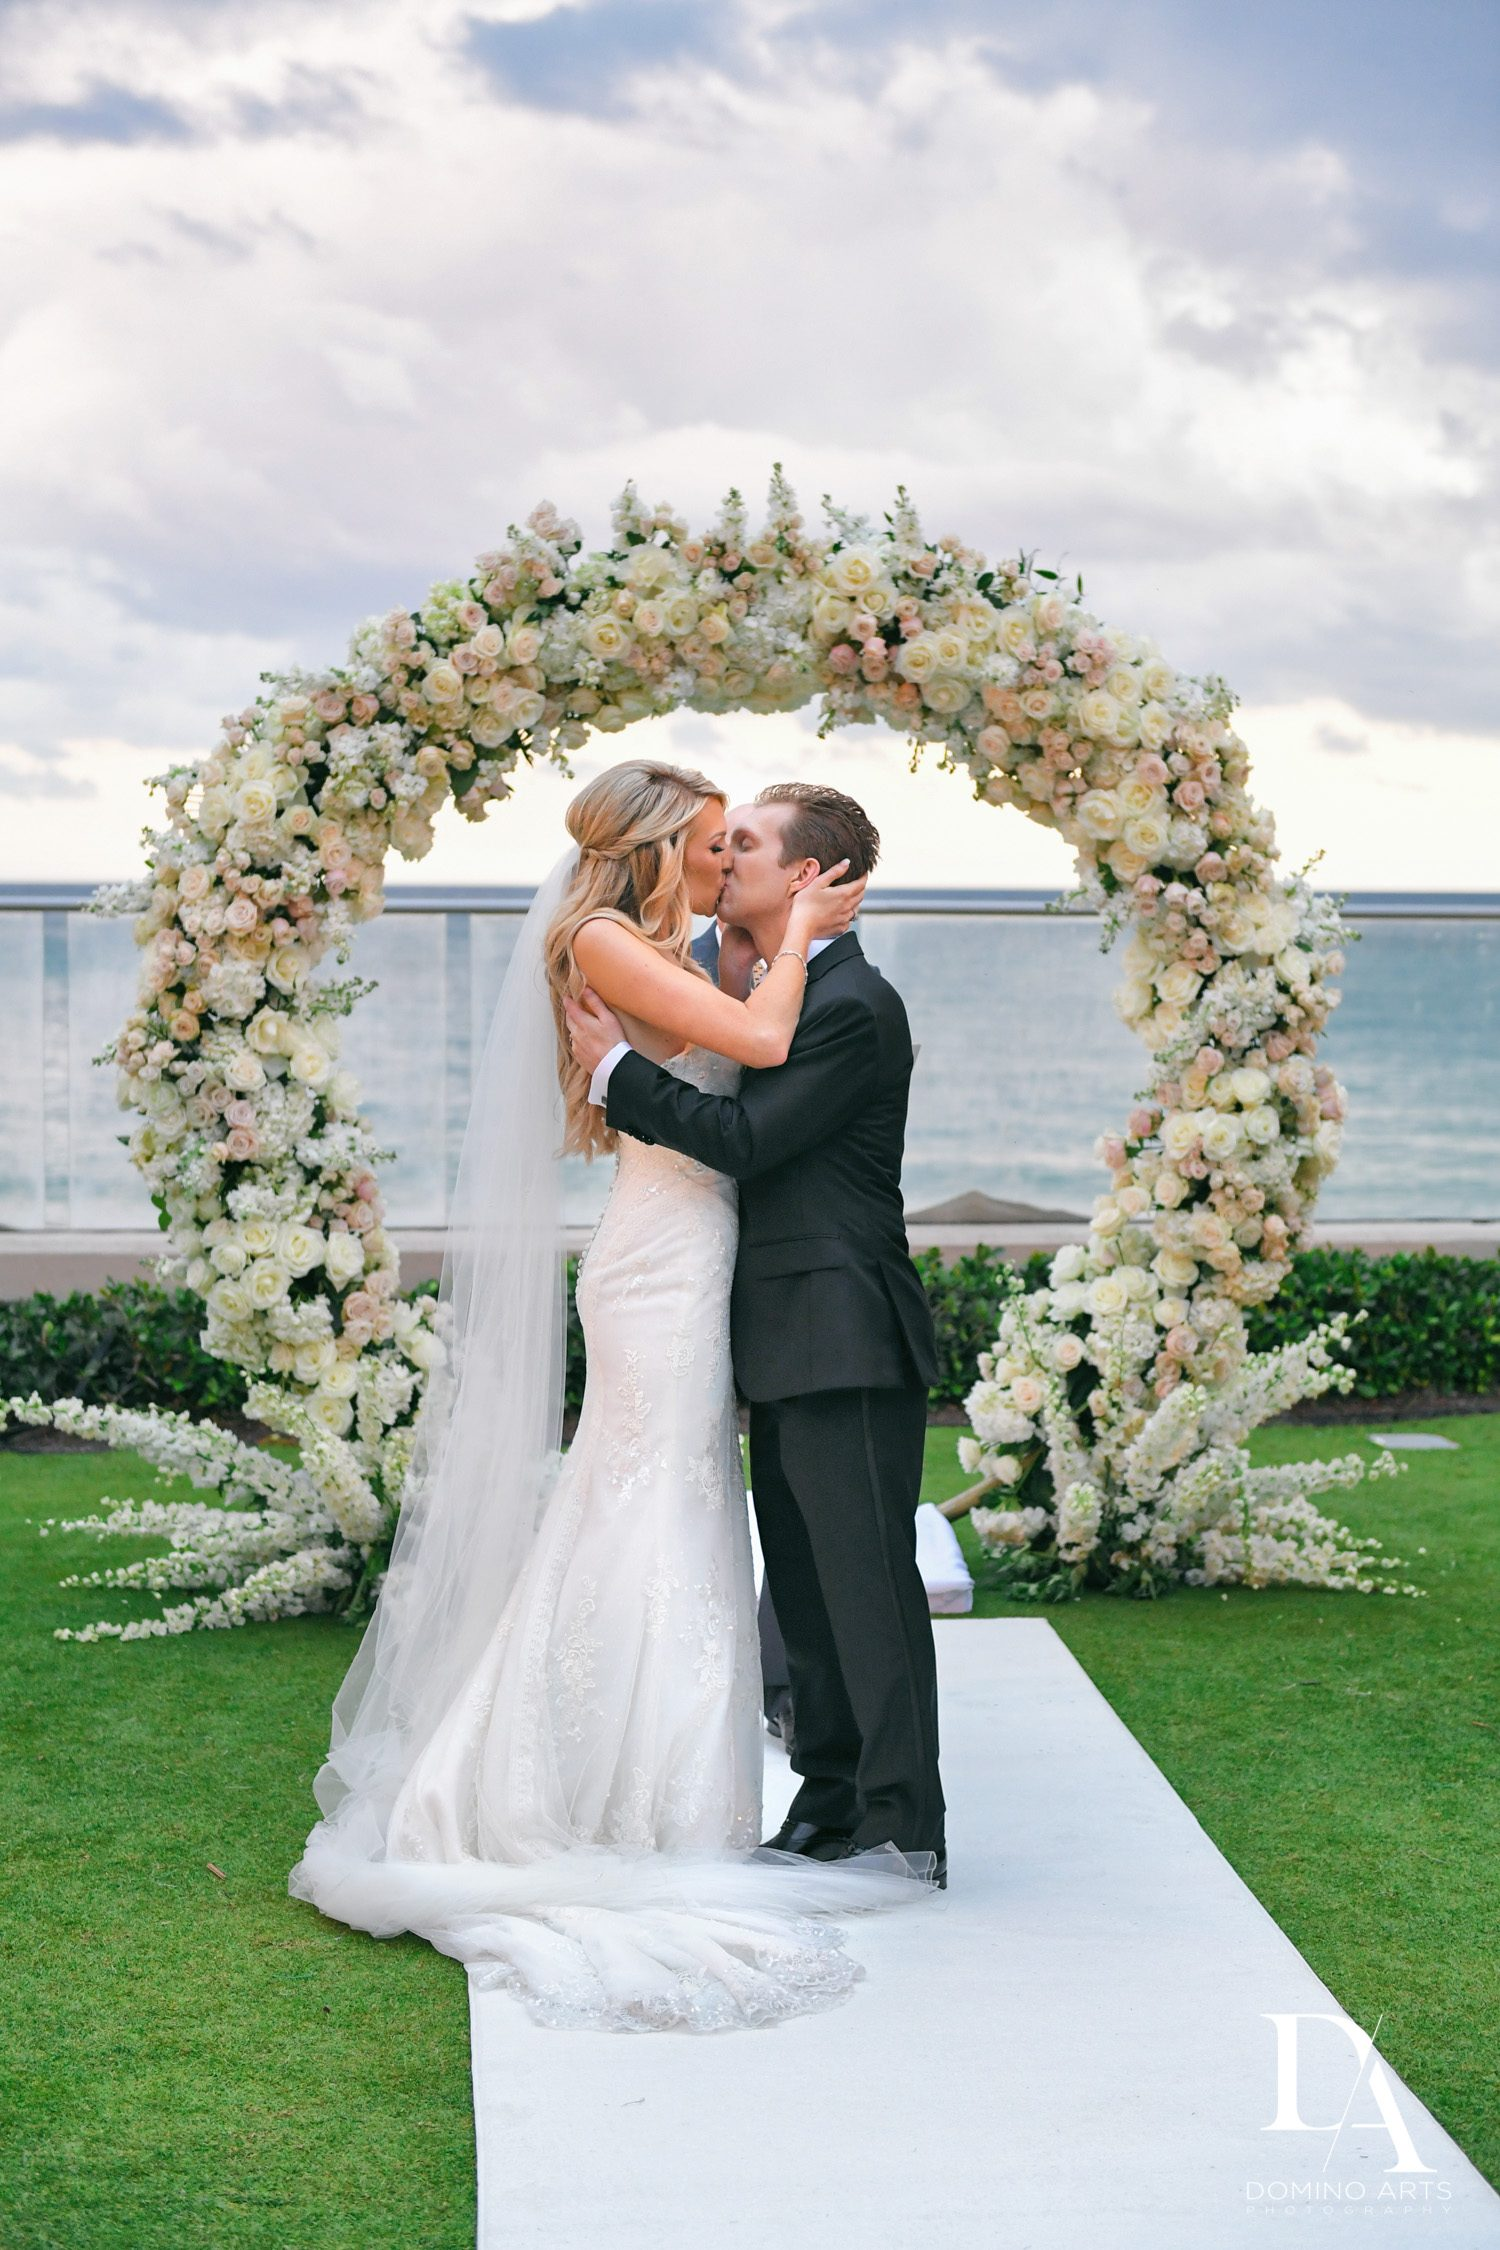 just married kiss at Extravagant Wedding at The Breakers Palm Beach by Domino Arts Photography